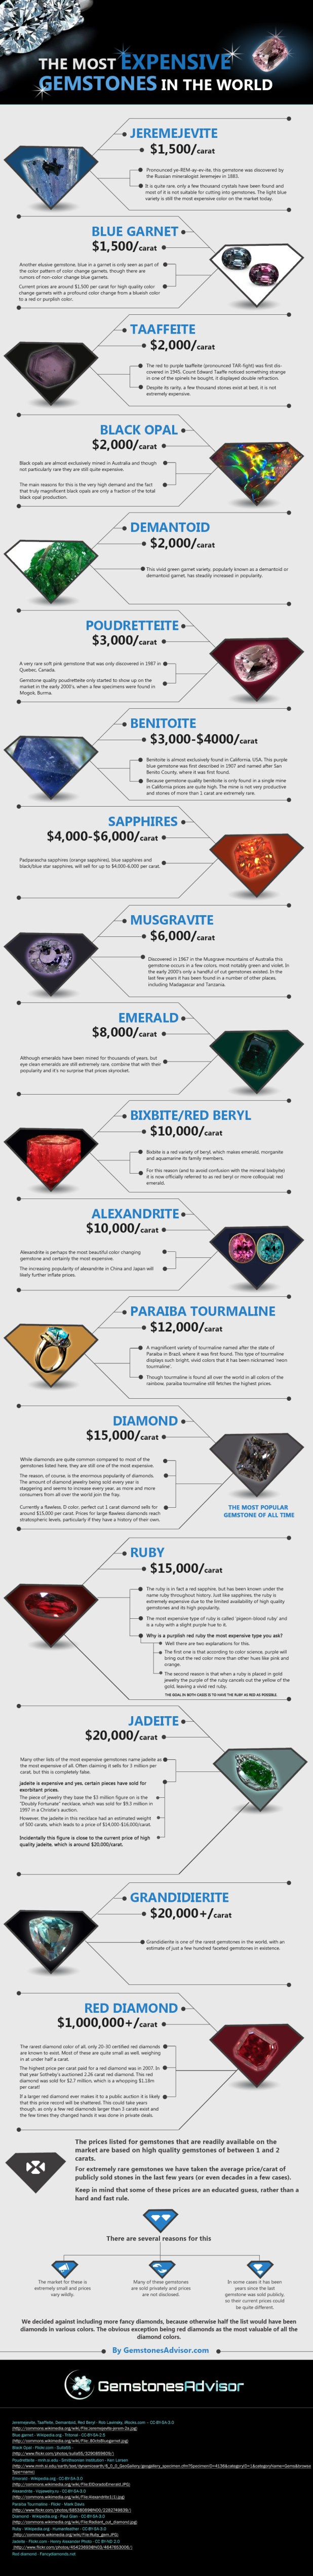 most expensive gemstones infographic